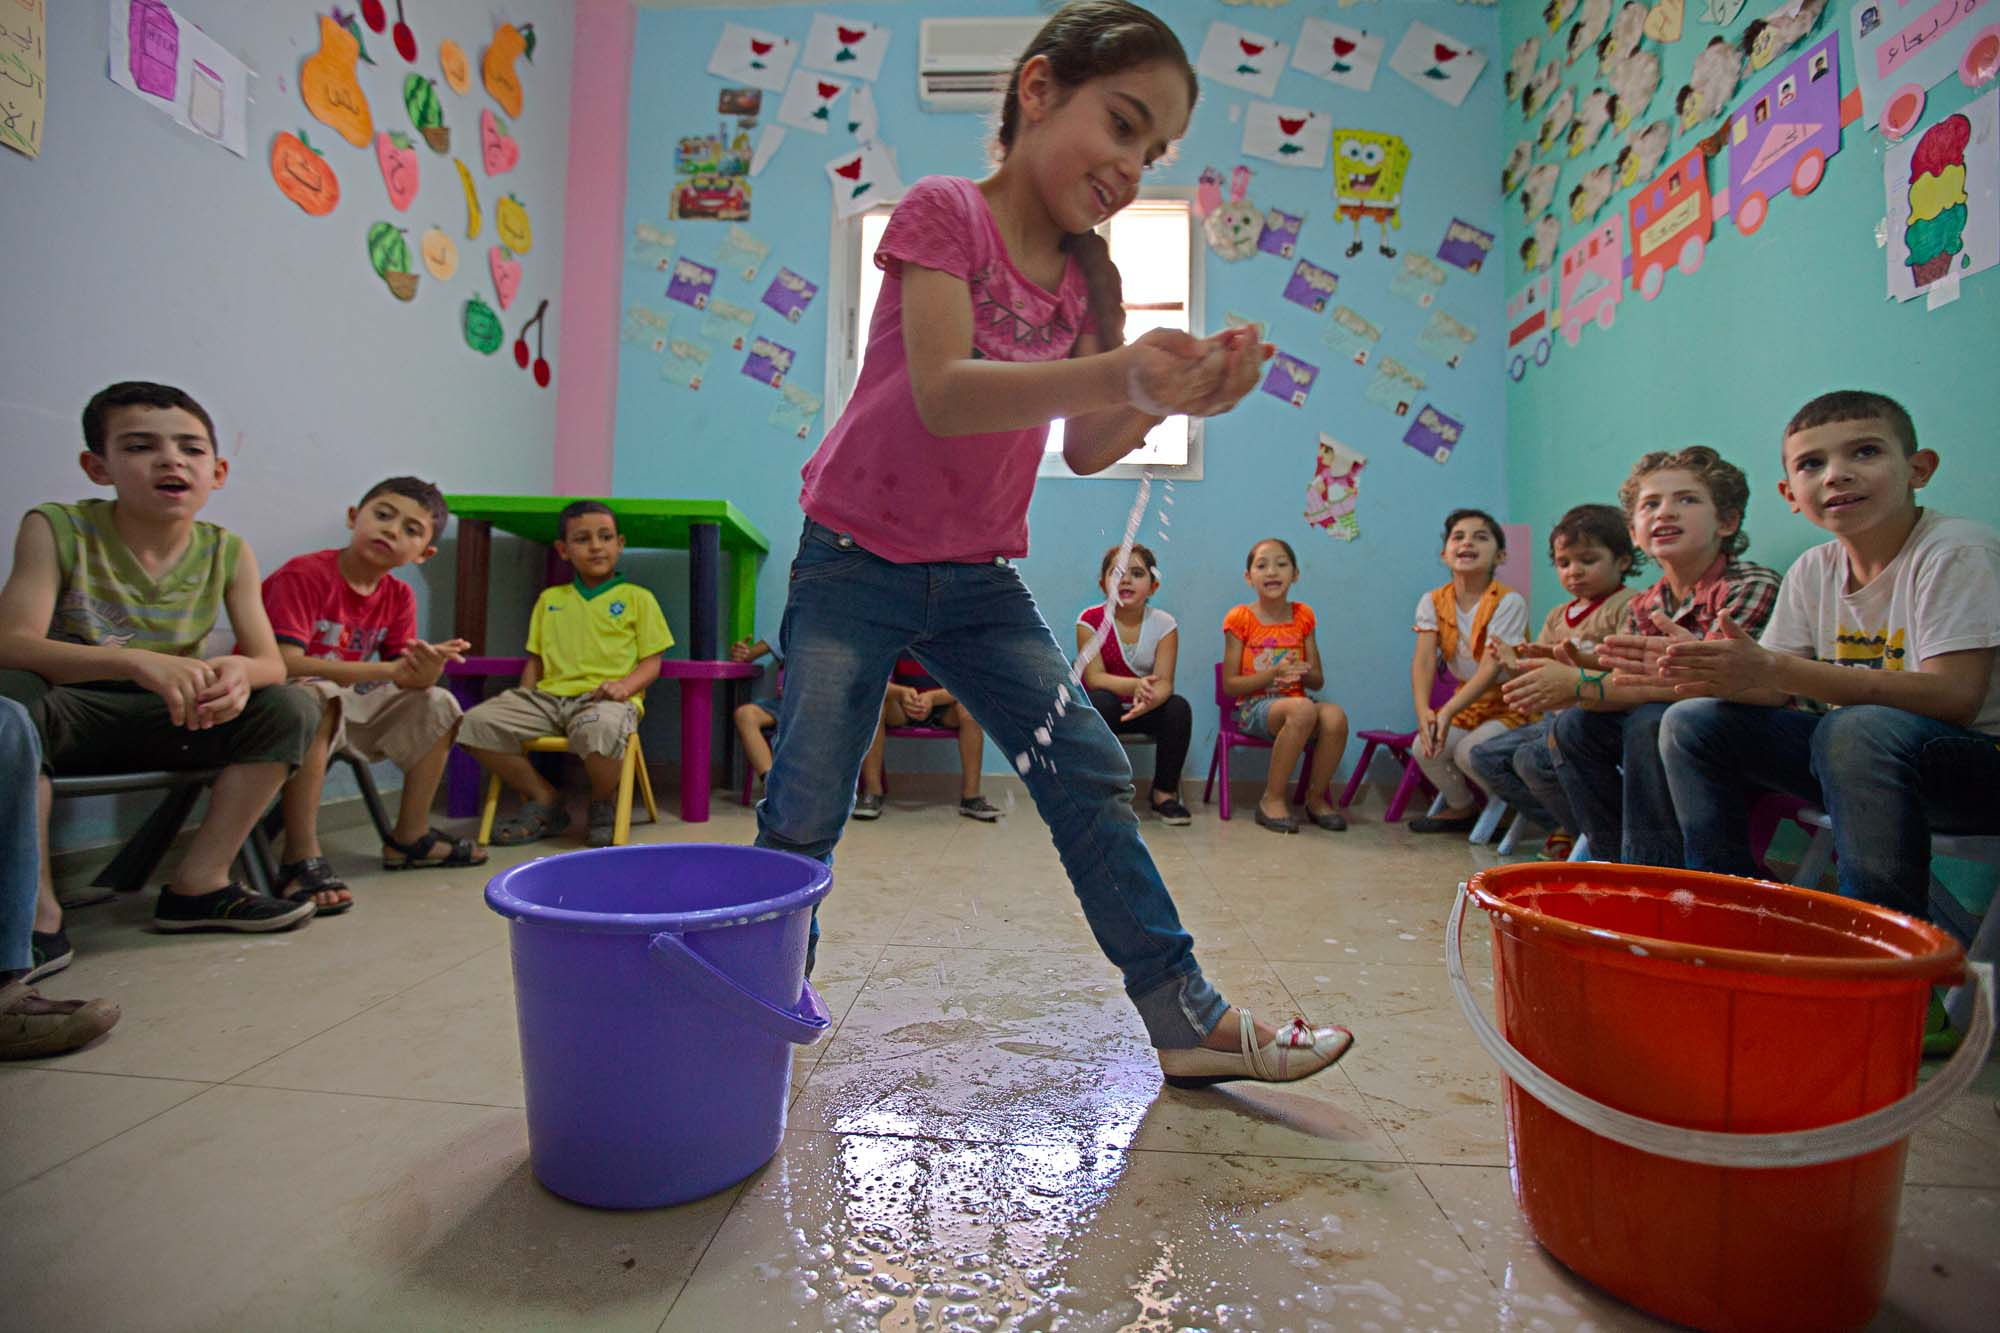 A smiling girl passes handfuls of water between two buckets surrounded by children sitting on chairs.